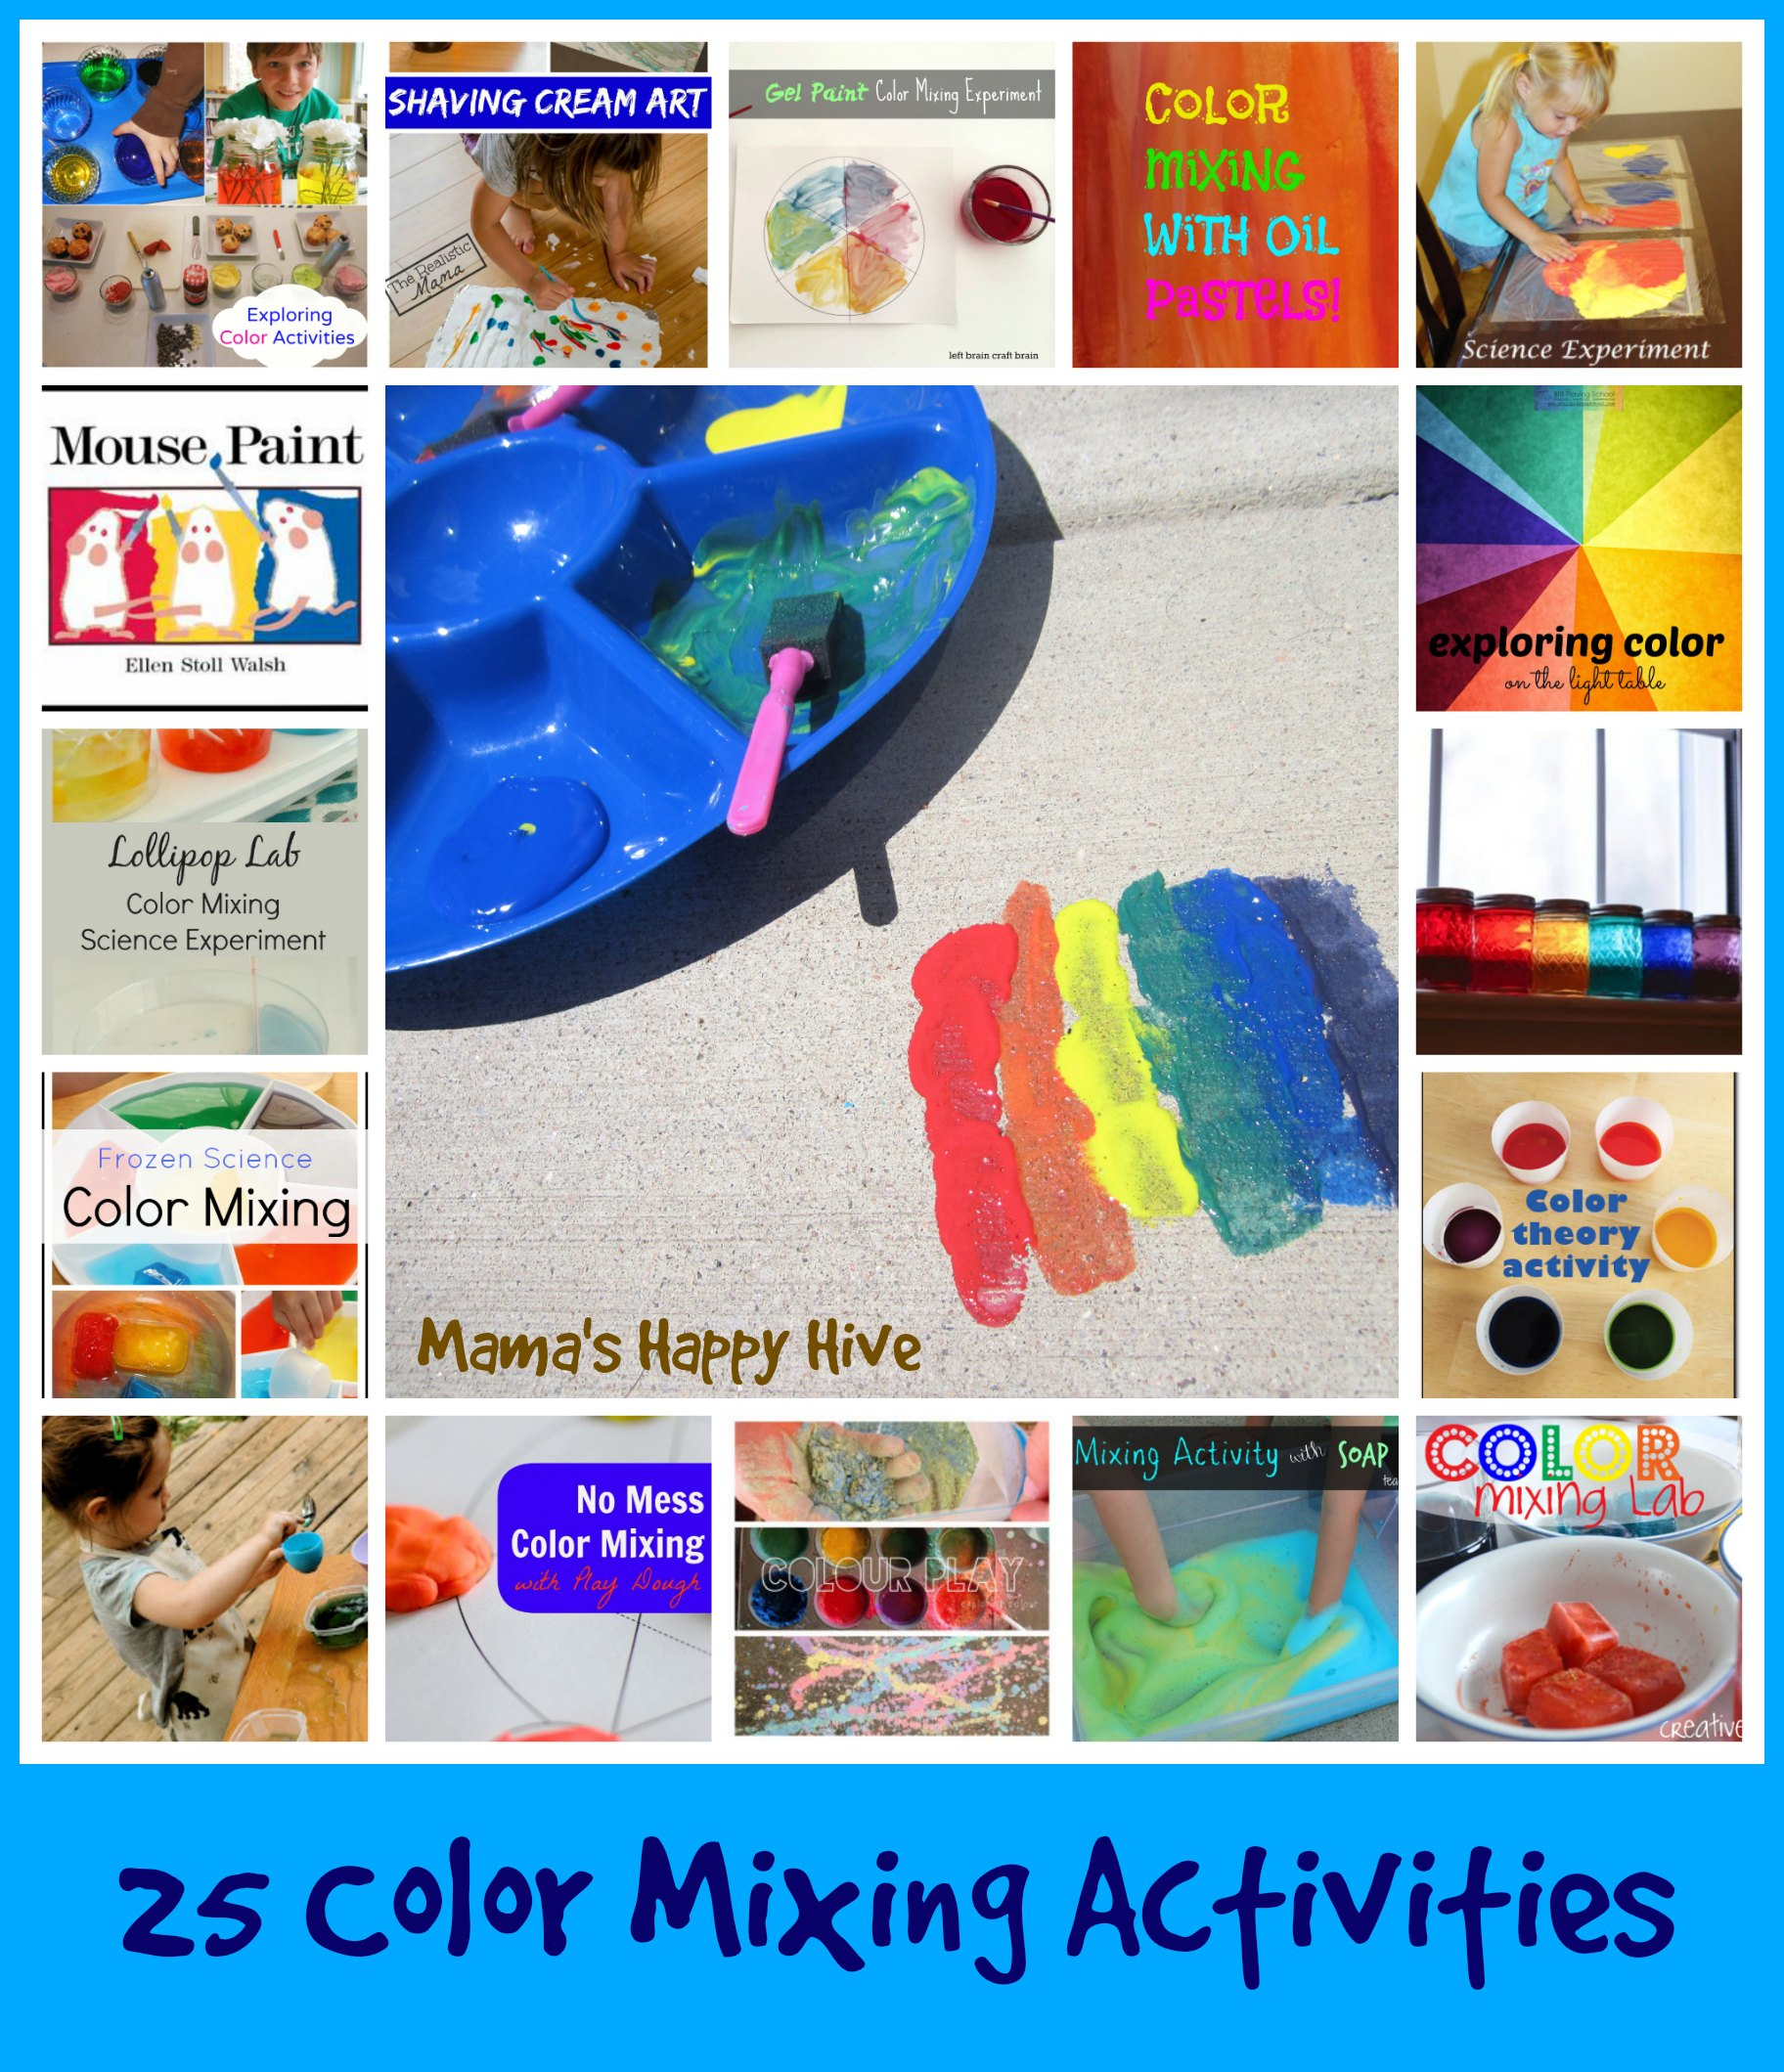 25 fabulous color mixing activities mama 39 s happy hive. Black Bedroom Furniture Sets. Home Design Ideas